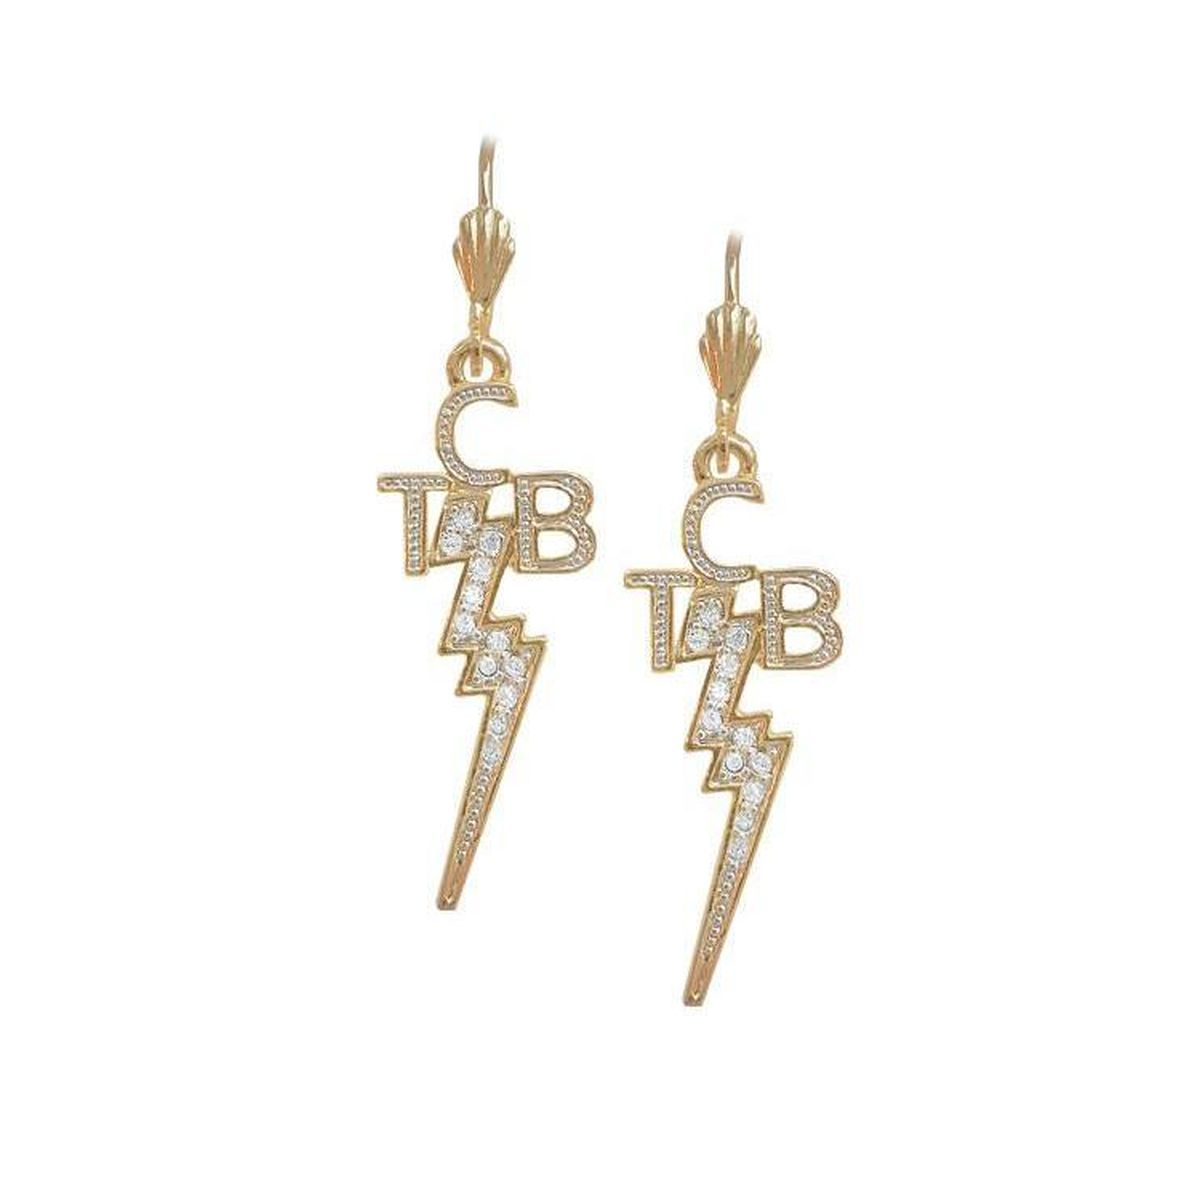 Lowell Hays 18K Gold Plated TCB Earrings with Swarovski Crystals